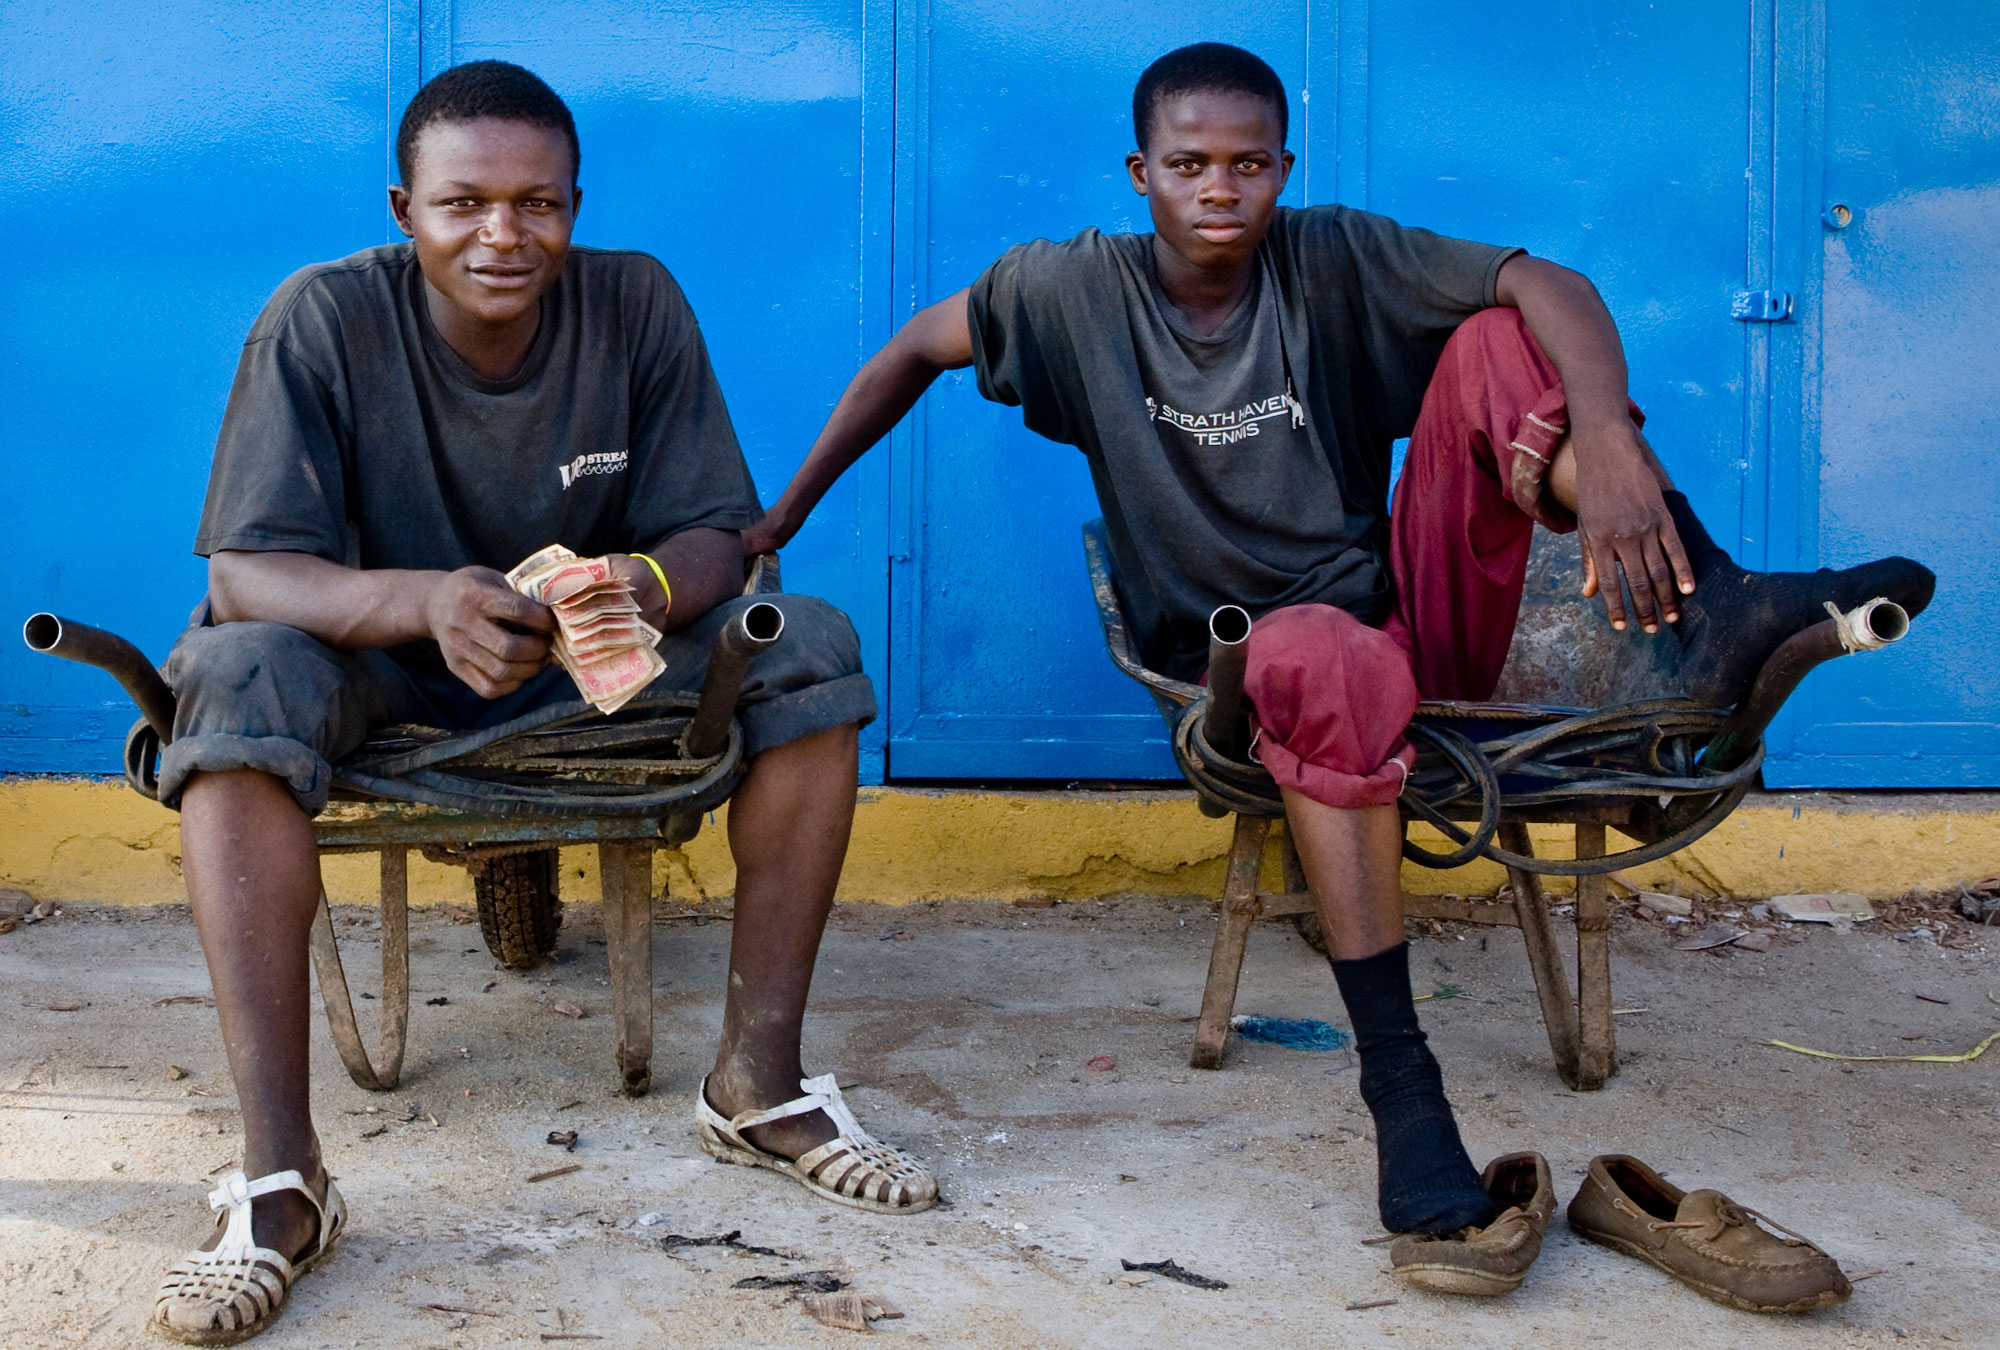 Youth in Liberia